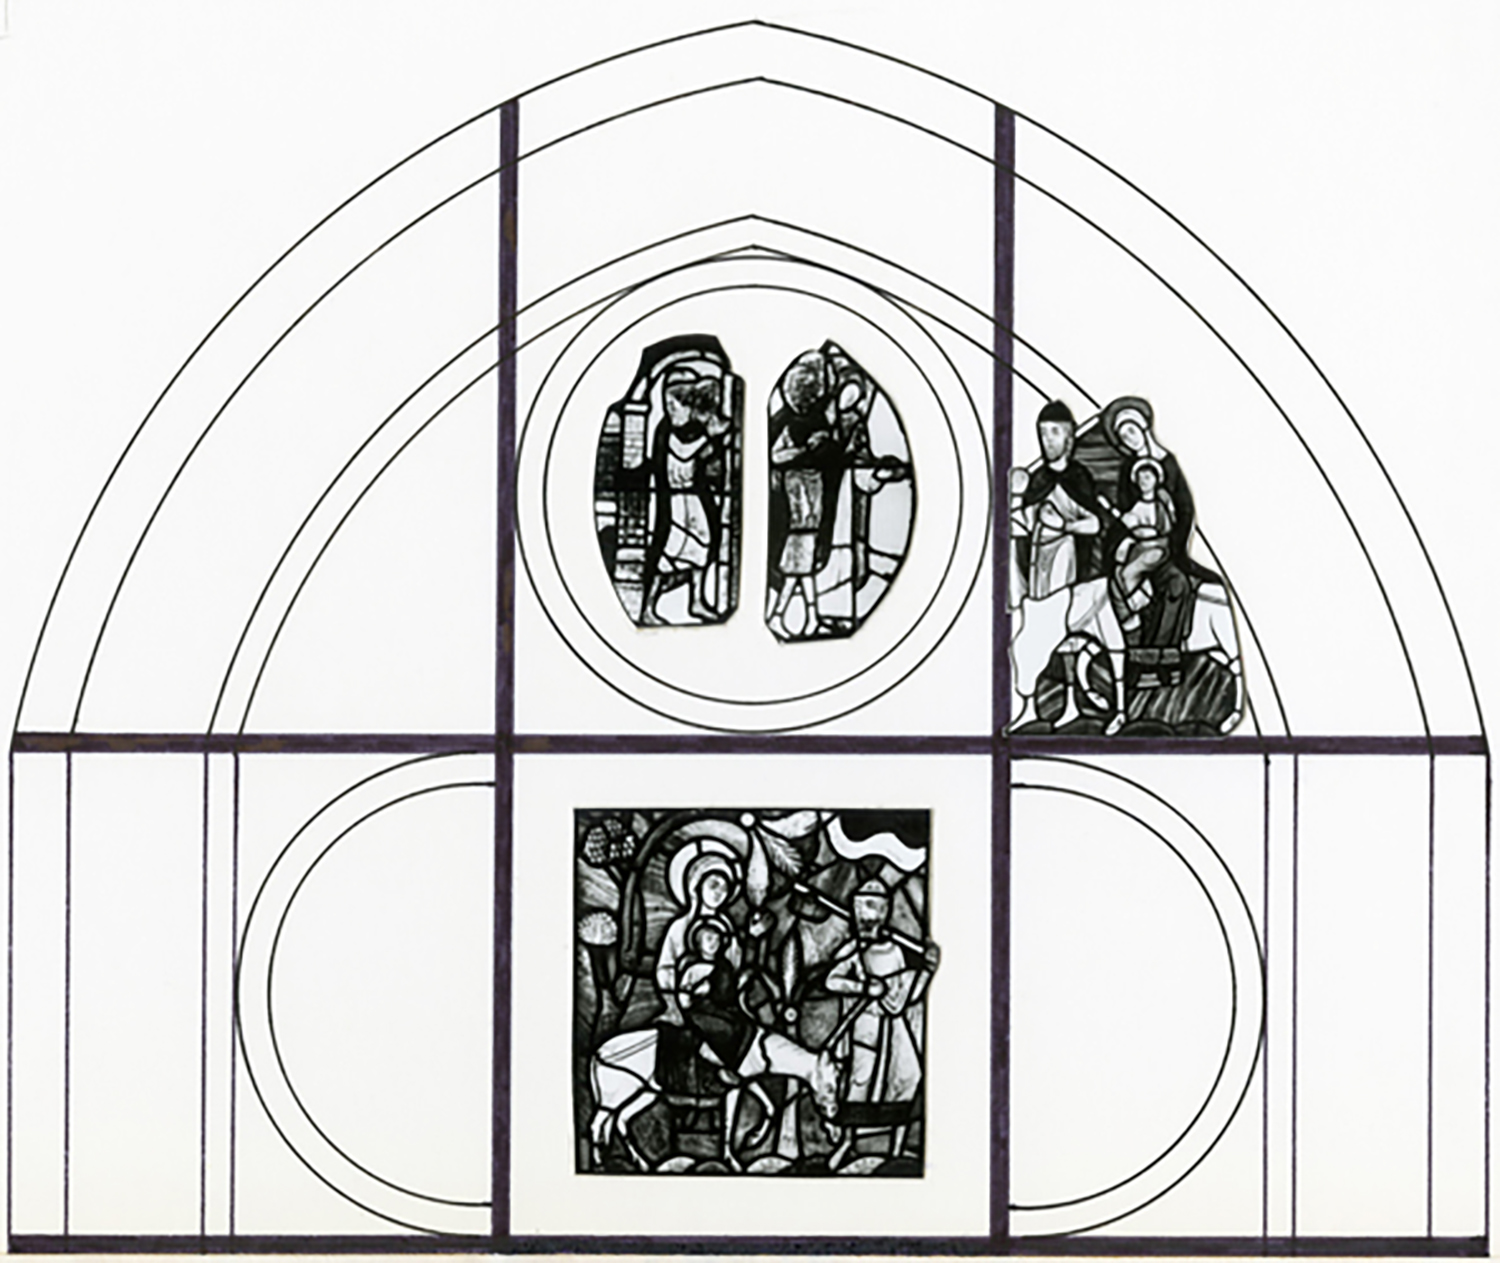 Figure 5: Reconstruction of the upper two registers of the Infancy of Christ window from Saint-Denis, incorporating the Pitcairn Flight into Egypt and three panels now installed in Wilton parish church, England.